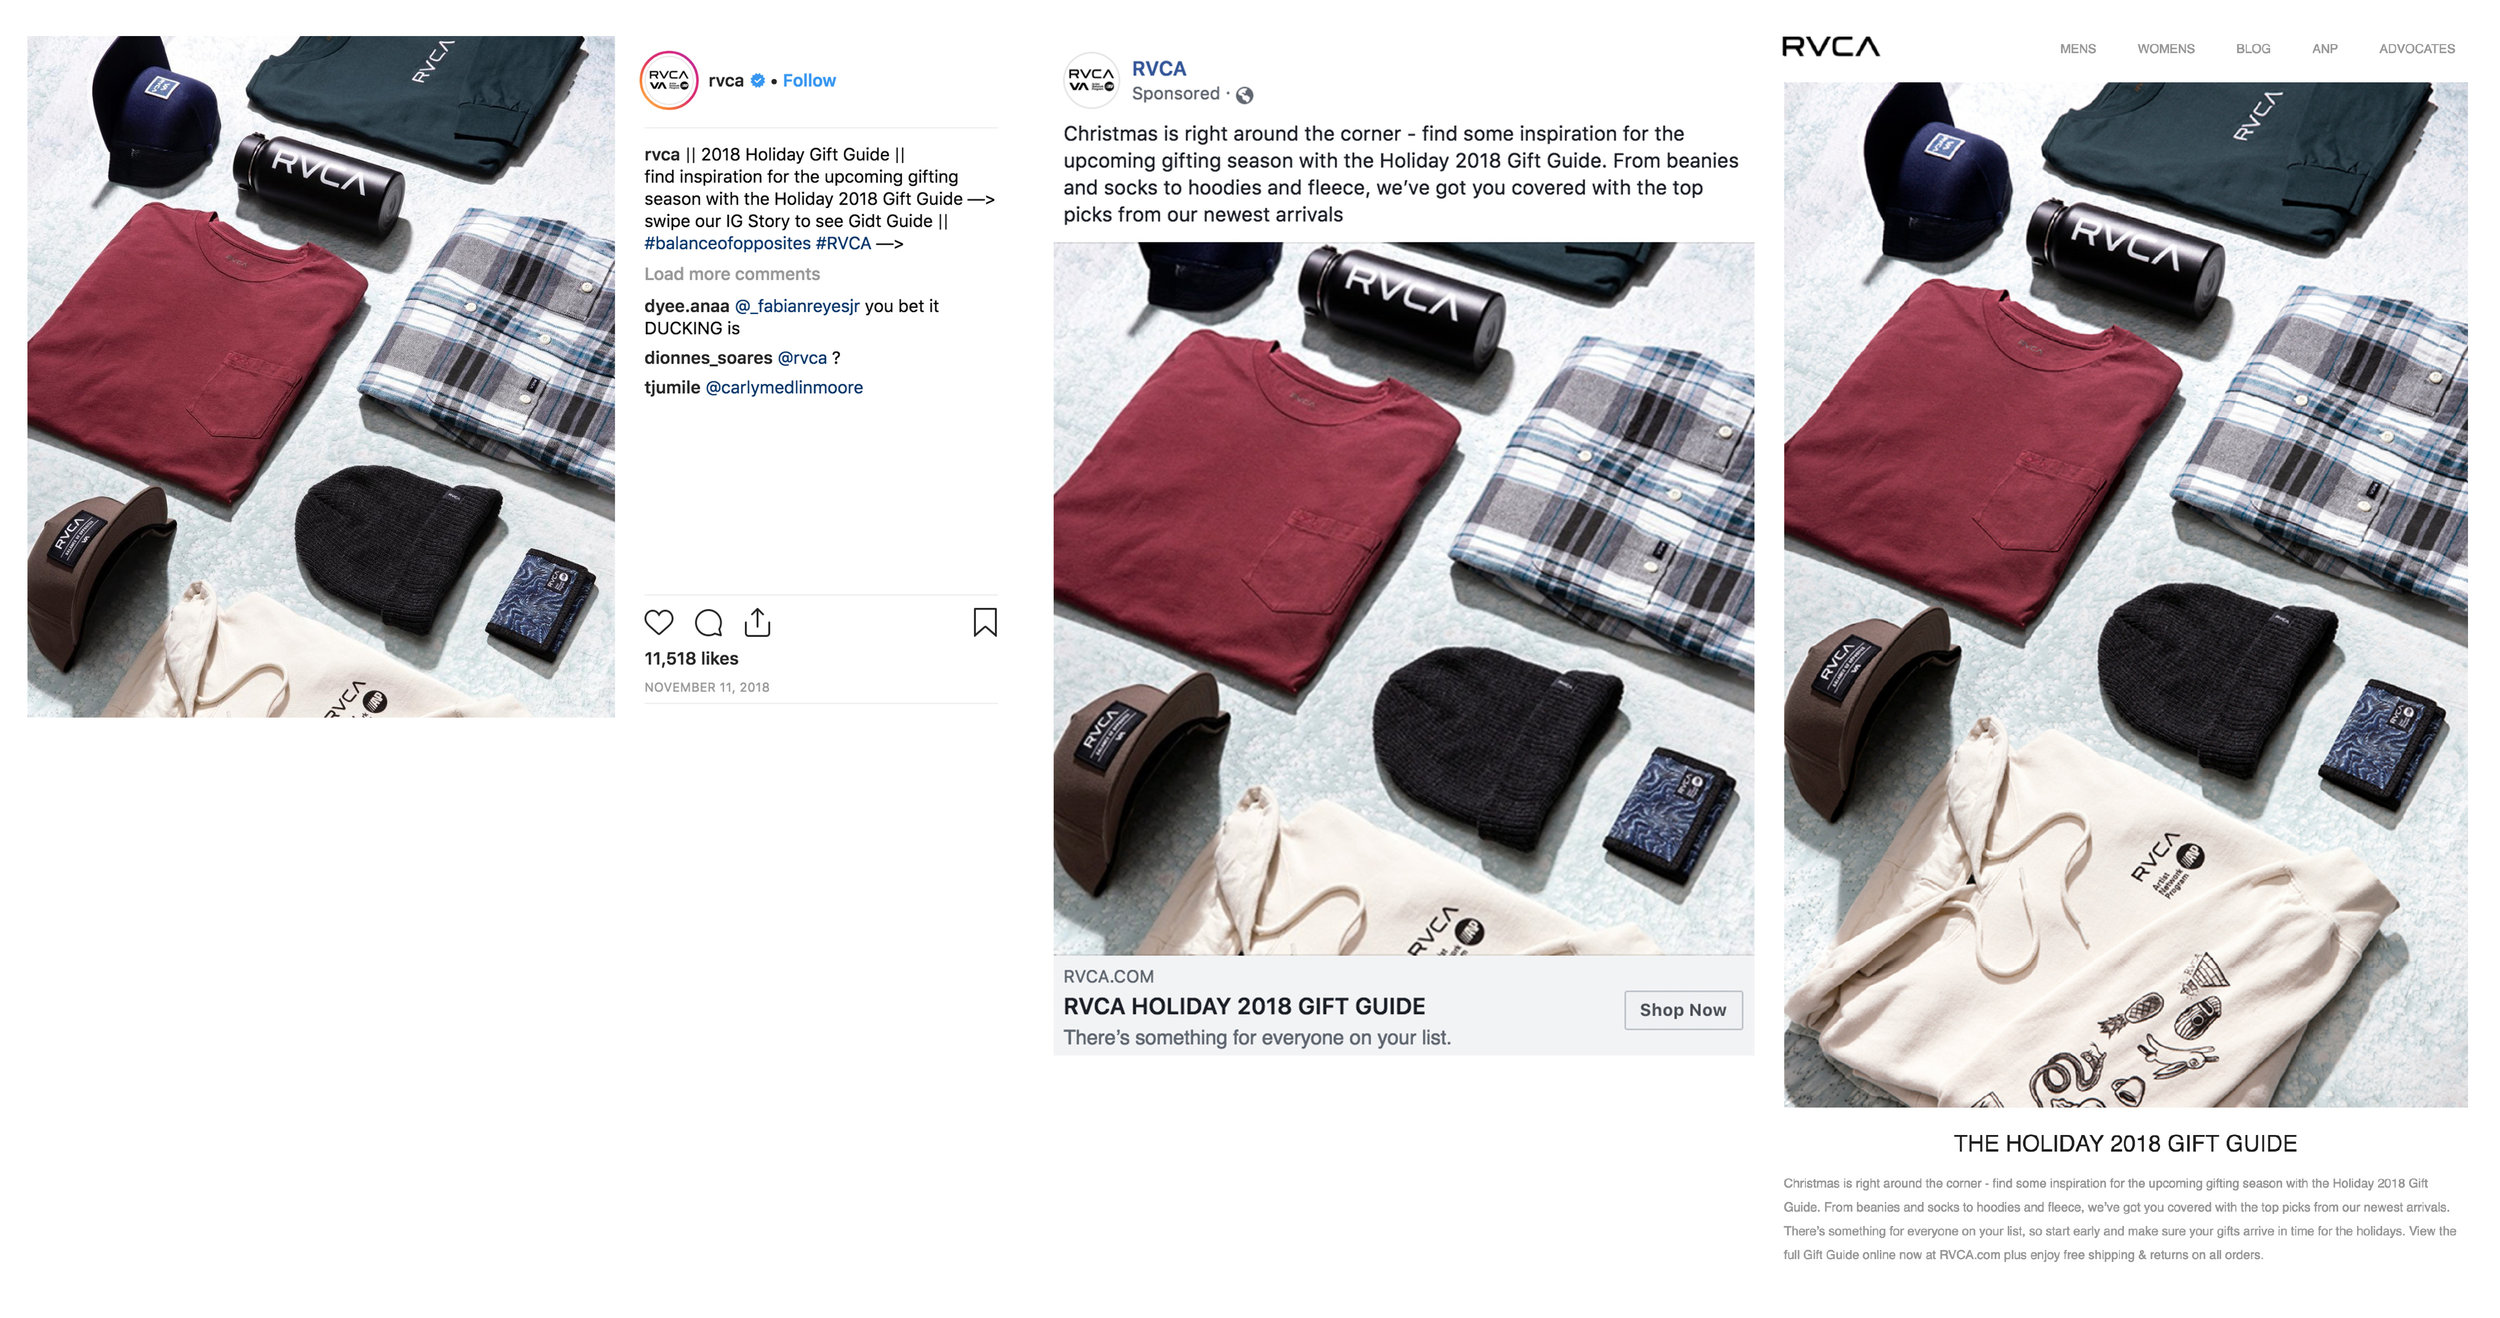 screencapture-milled-rvca-the-rvca-holiday-2018-gift-guide-VdxTeuq-9Dc-7a_g-2019-03-22-07_53_01-1.jpg